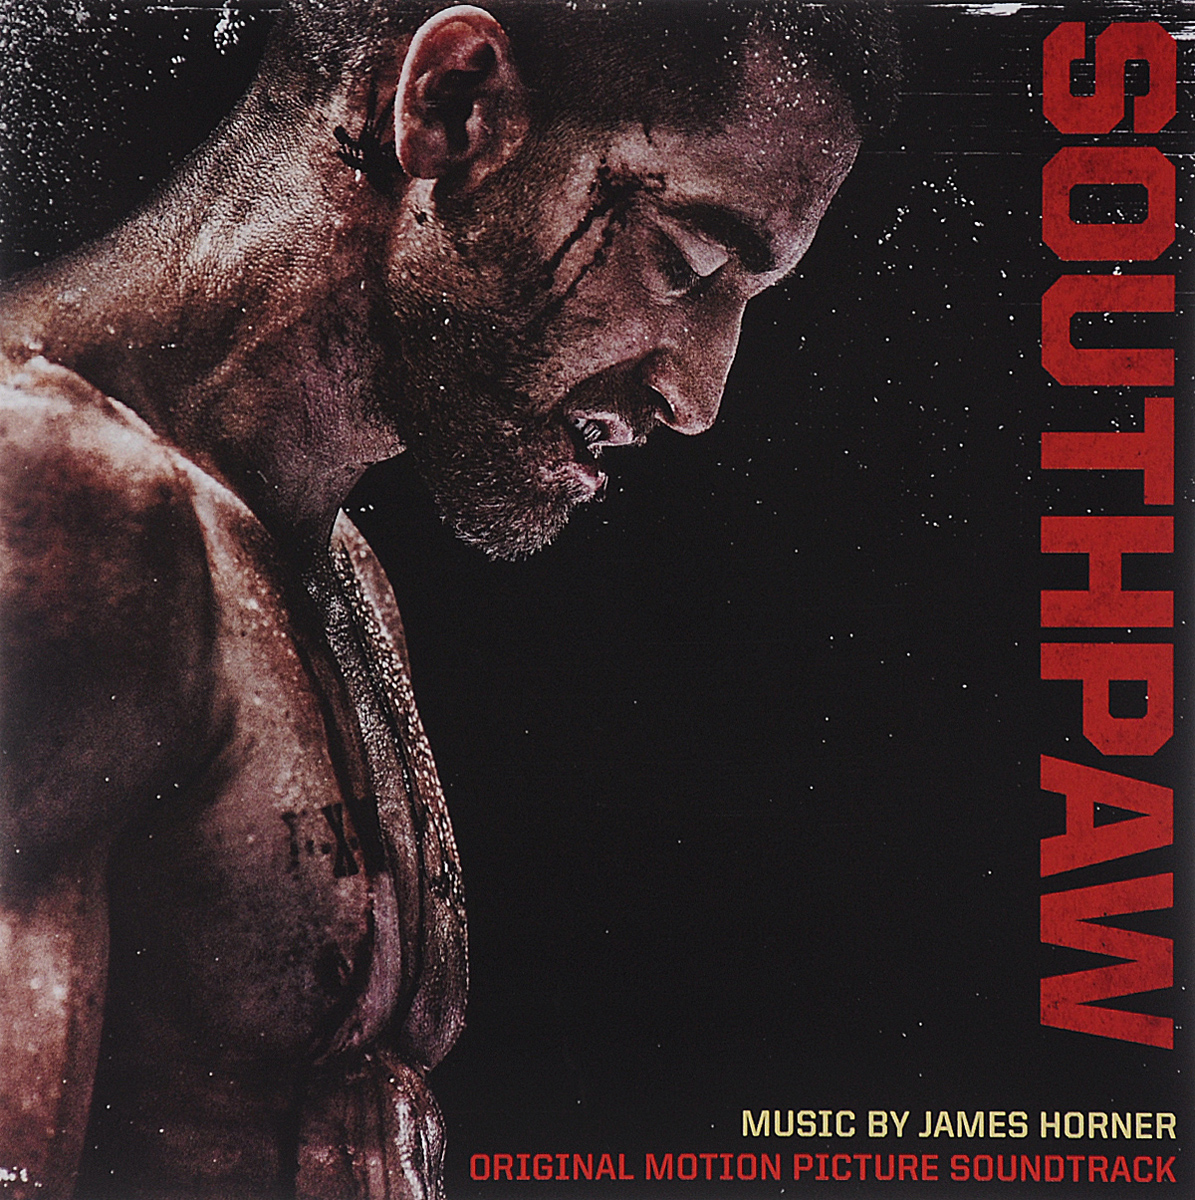 где купить Southpaw. Original Motion Picture Soundtrack. Music By James Horner дешево